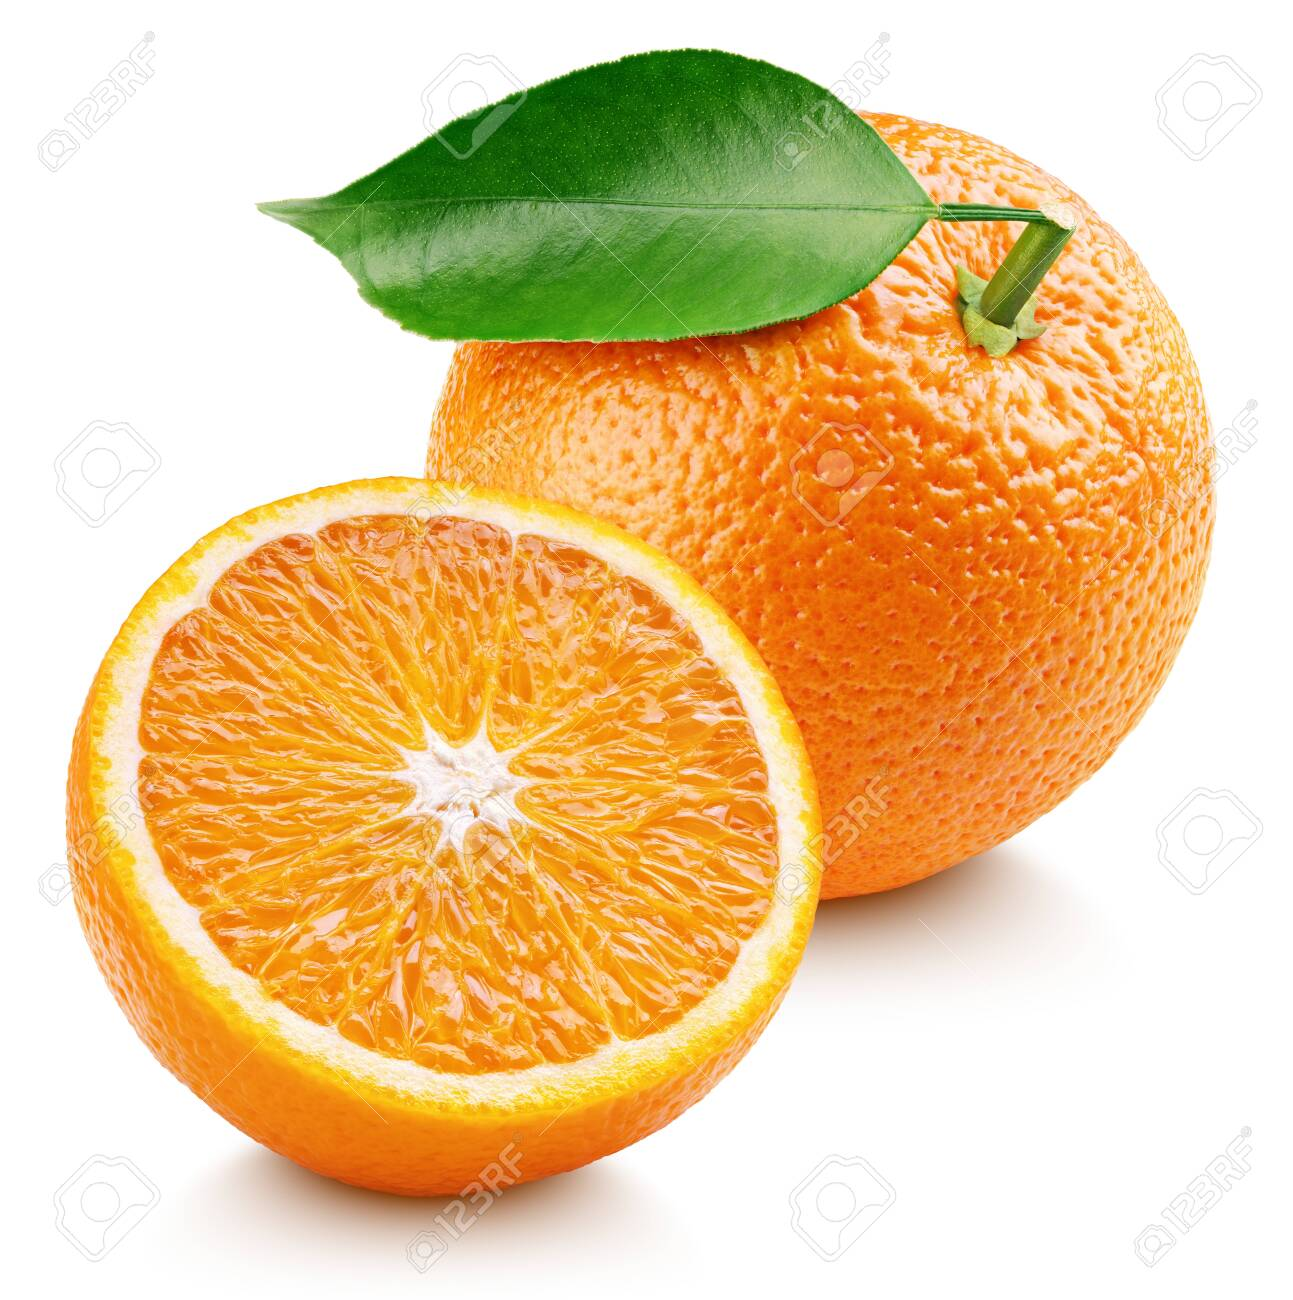 Whole ripe orange citrus fruit with leaf and orange half isolated on white background. Oranges with clipping path. Full depth of field. - 123615250